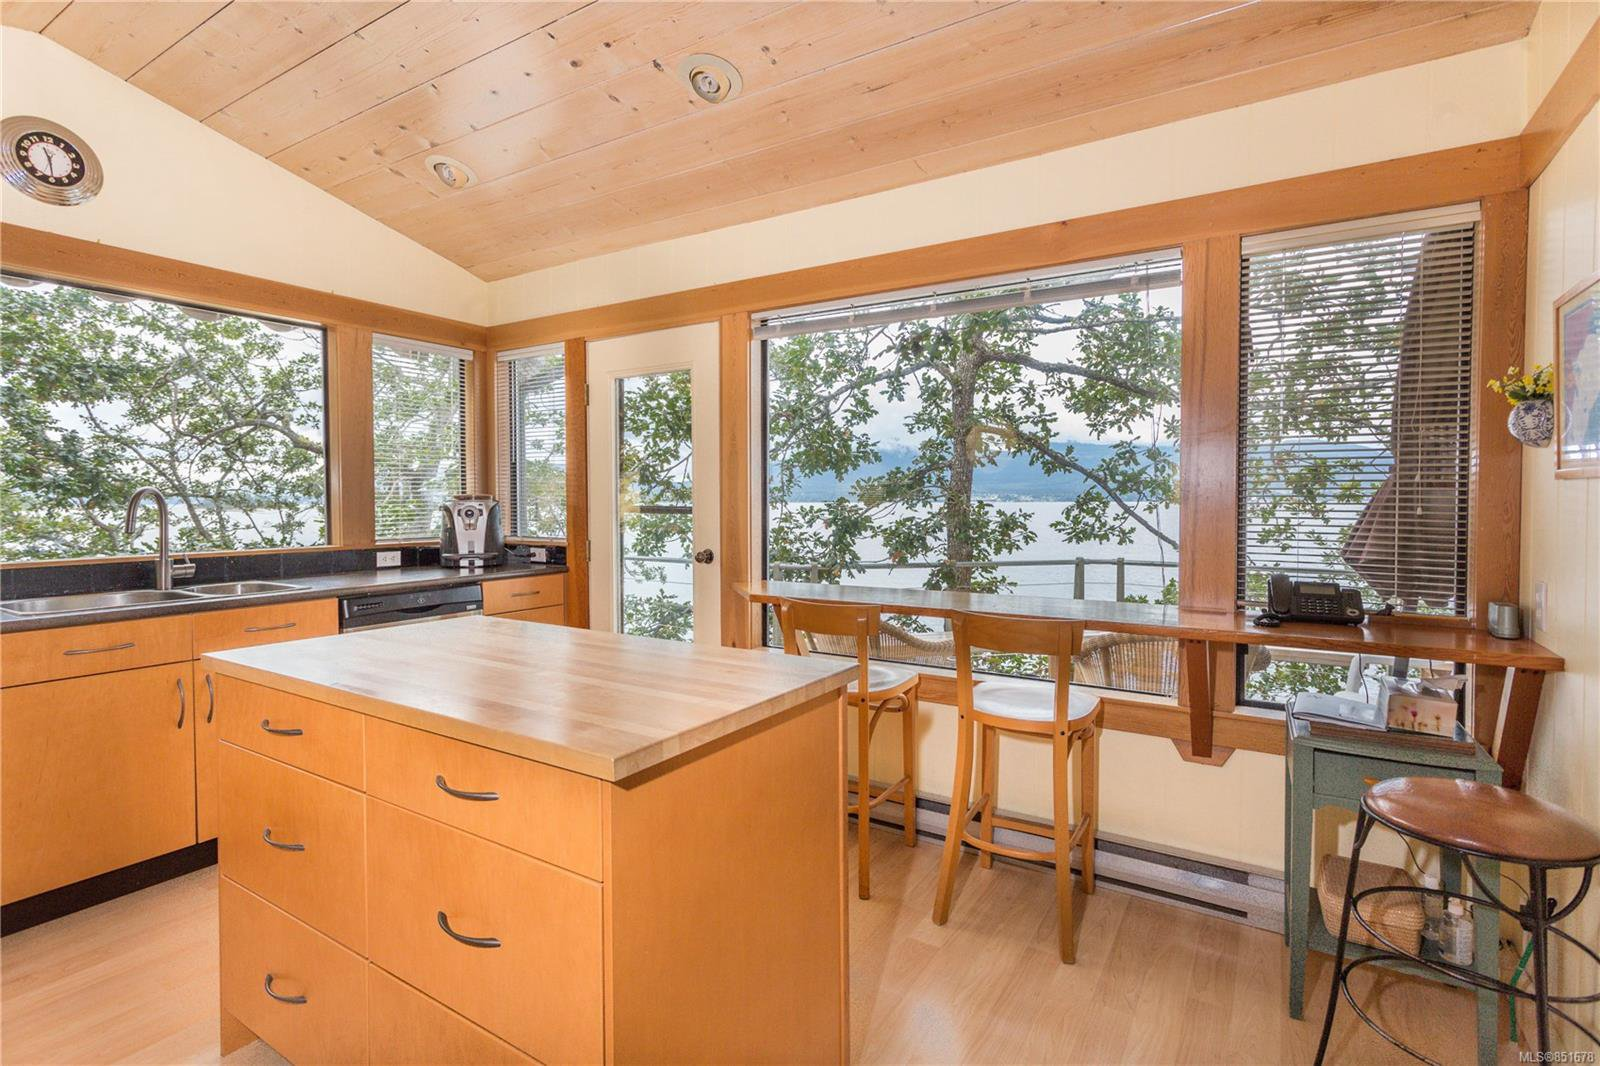 Photo 6: Photos: 262 Forbes Dr in : Isl Thetis Island House for sale (Islands)  : MLS®# 851678